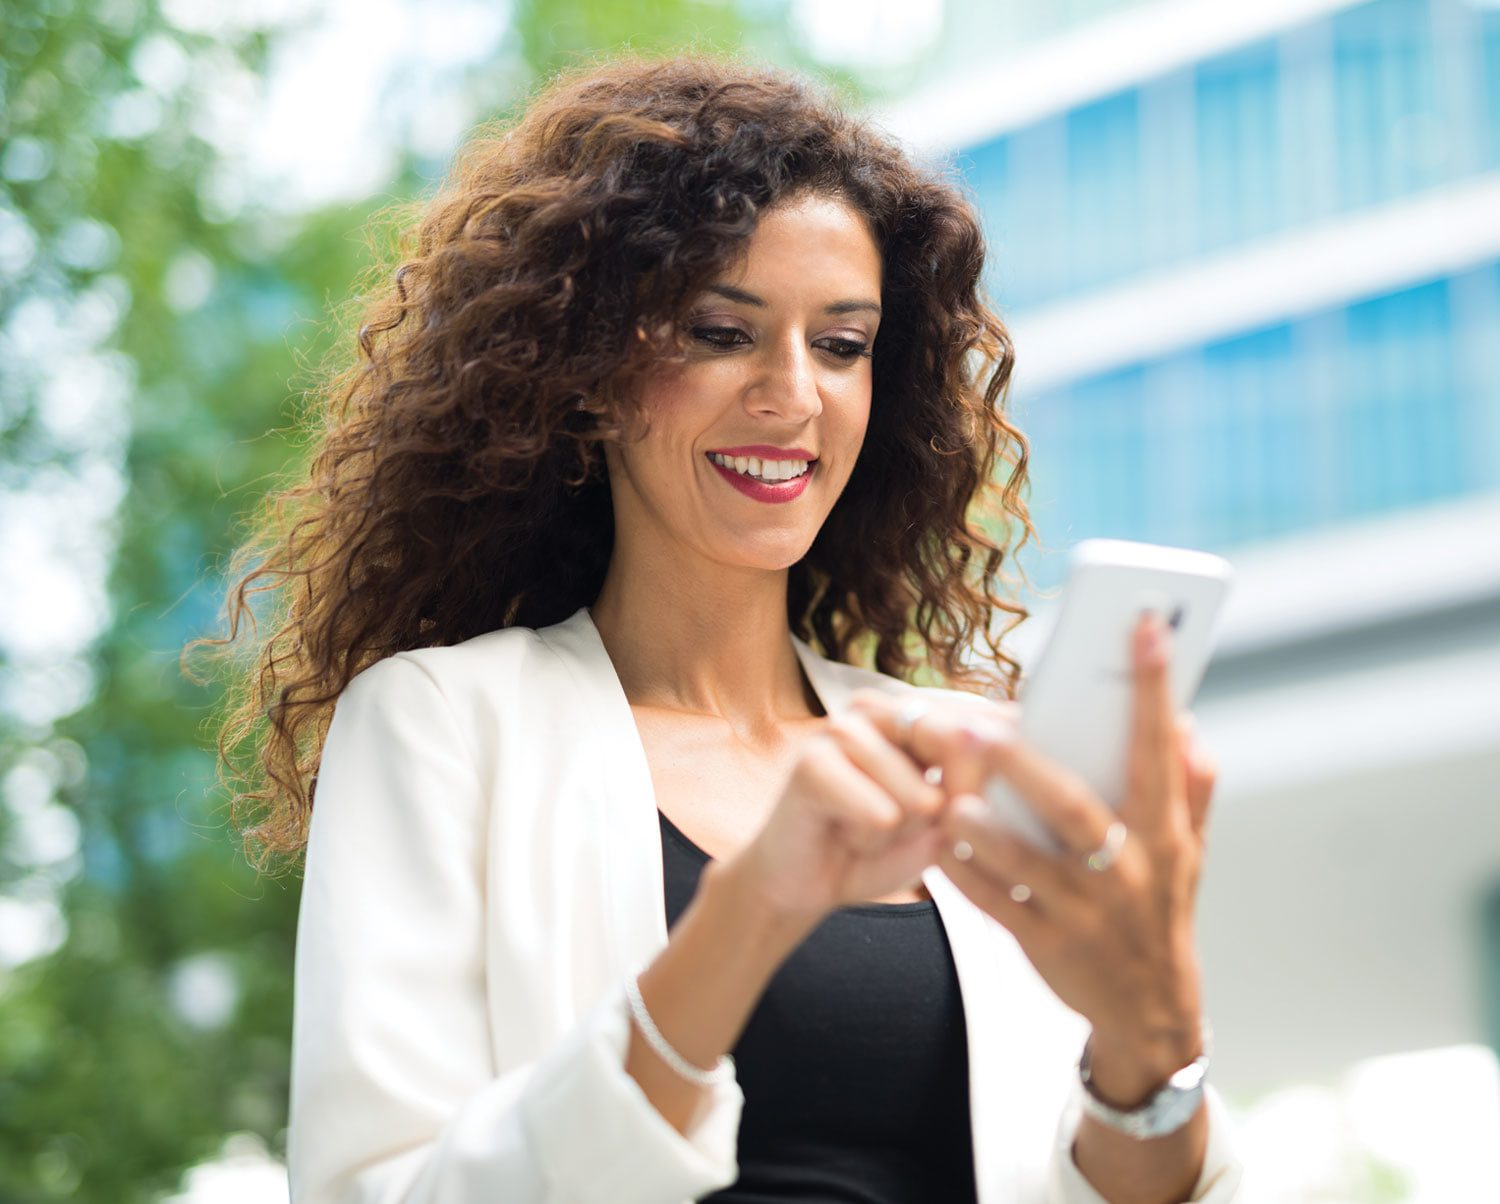 Woman checking security system on phone